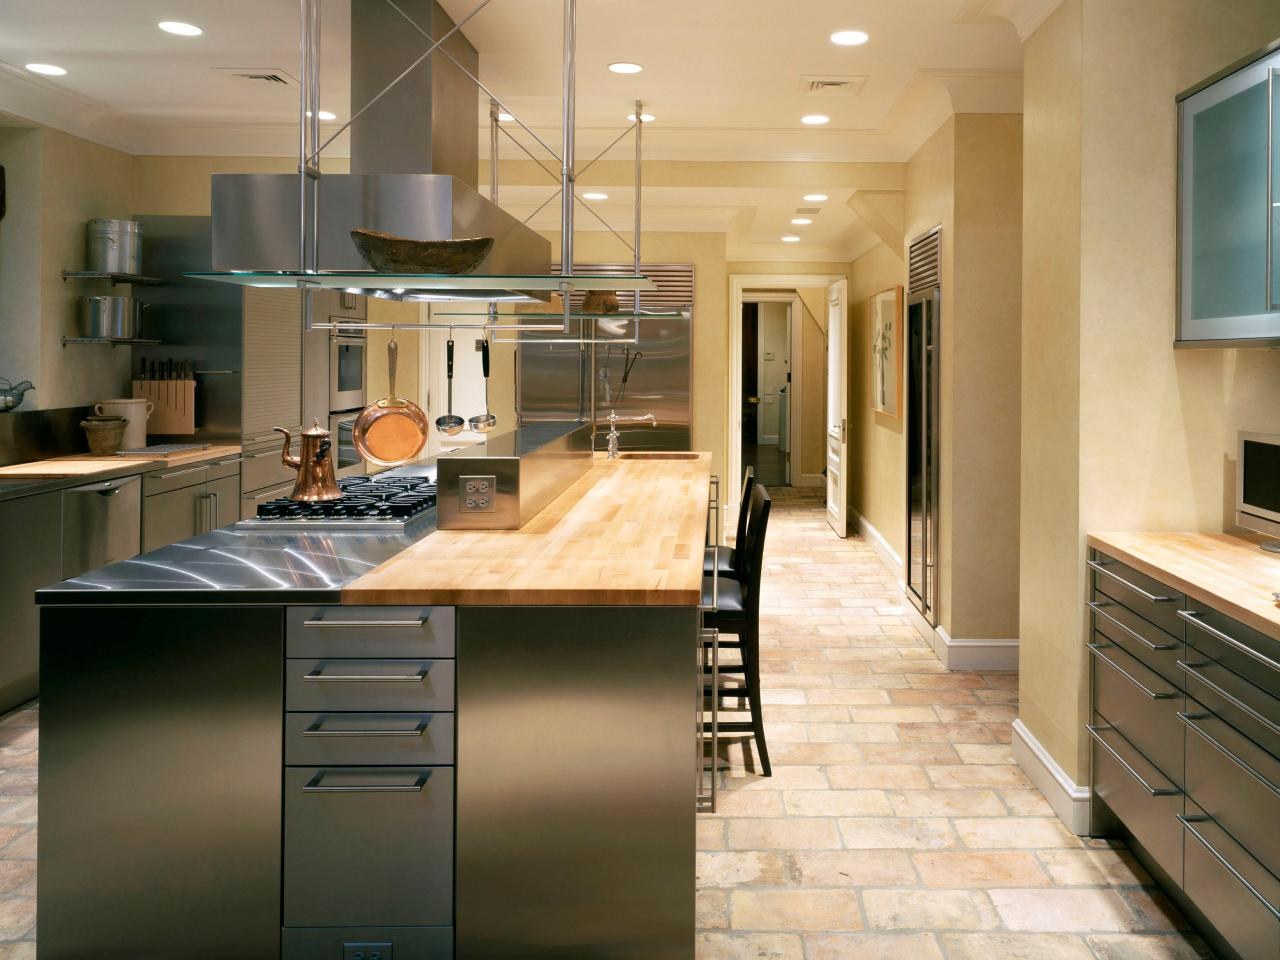 Creating a kitchen for entertaining hgtv Best kitchen remodels